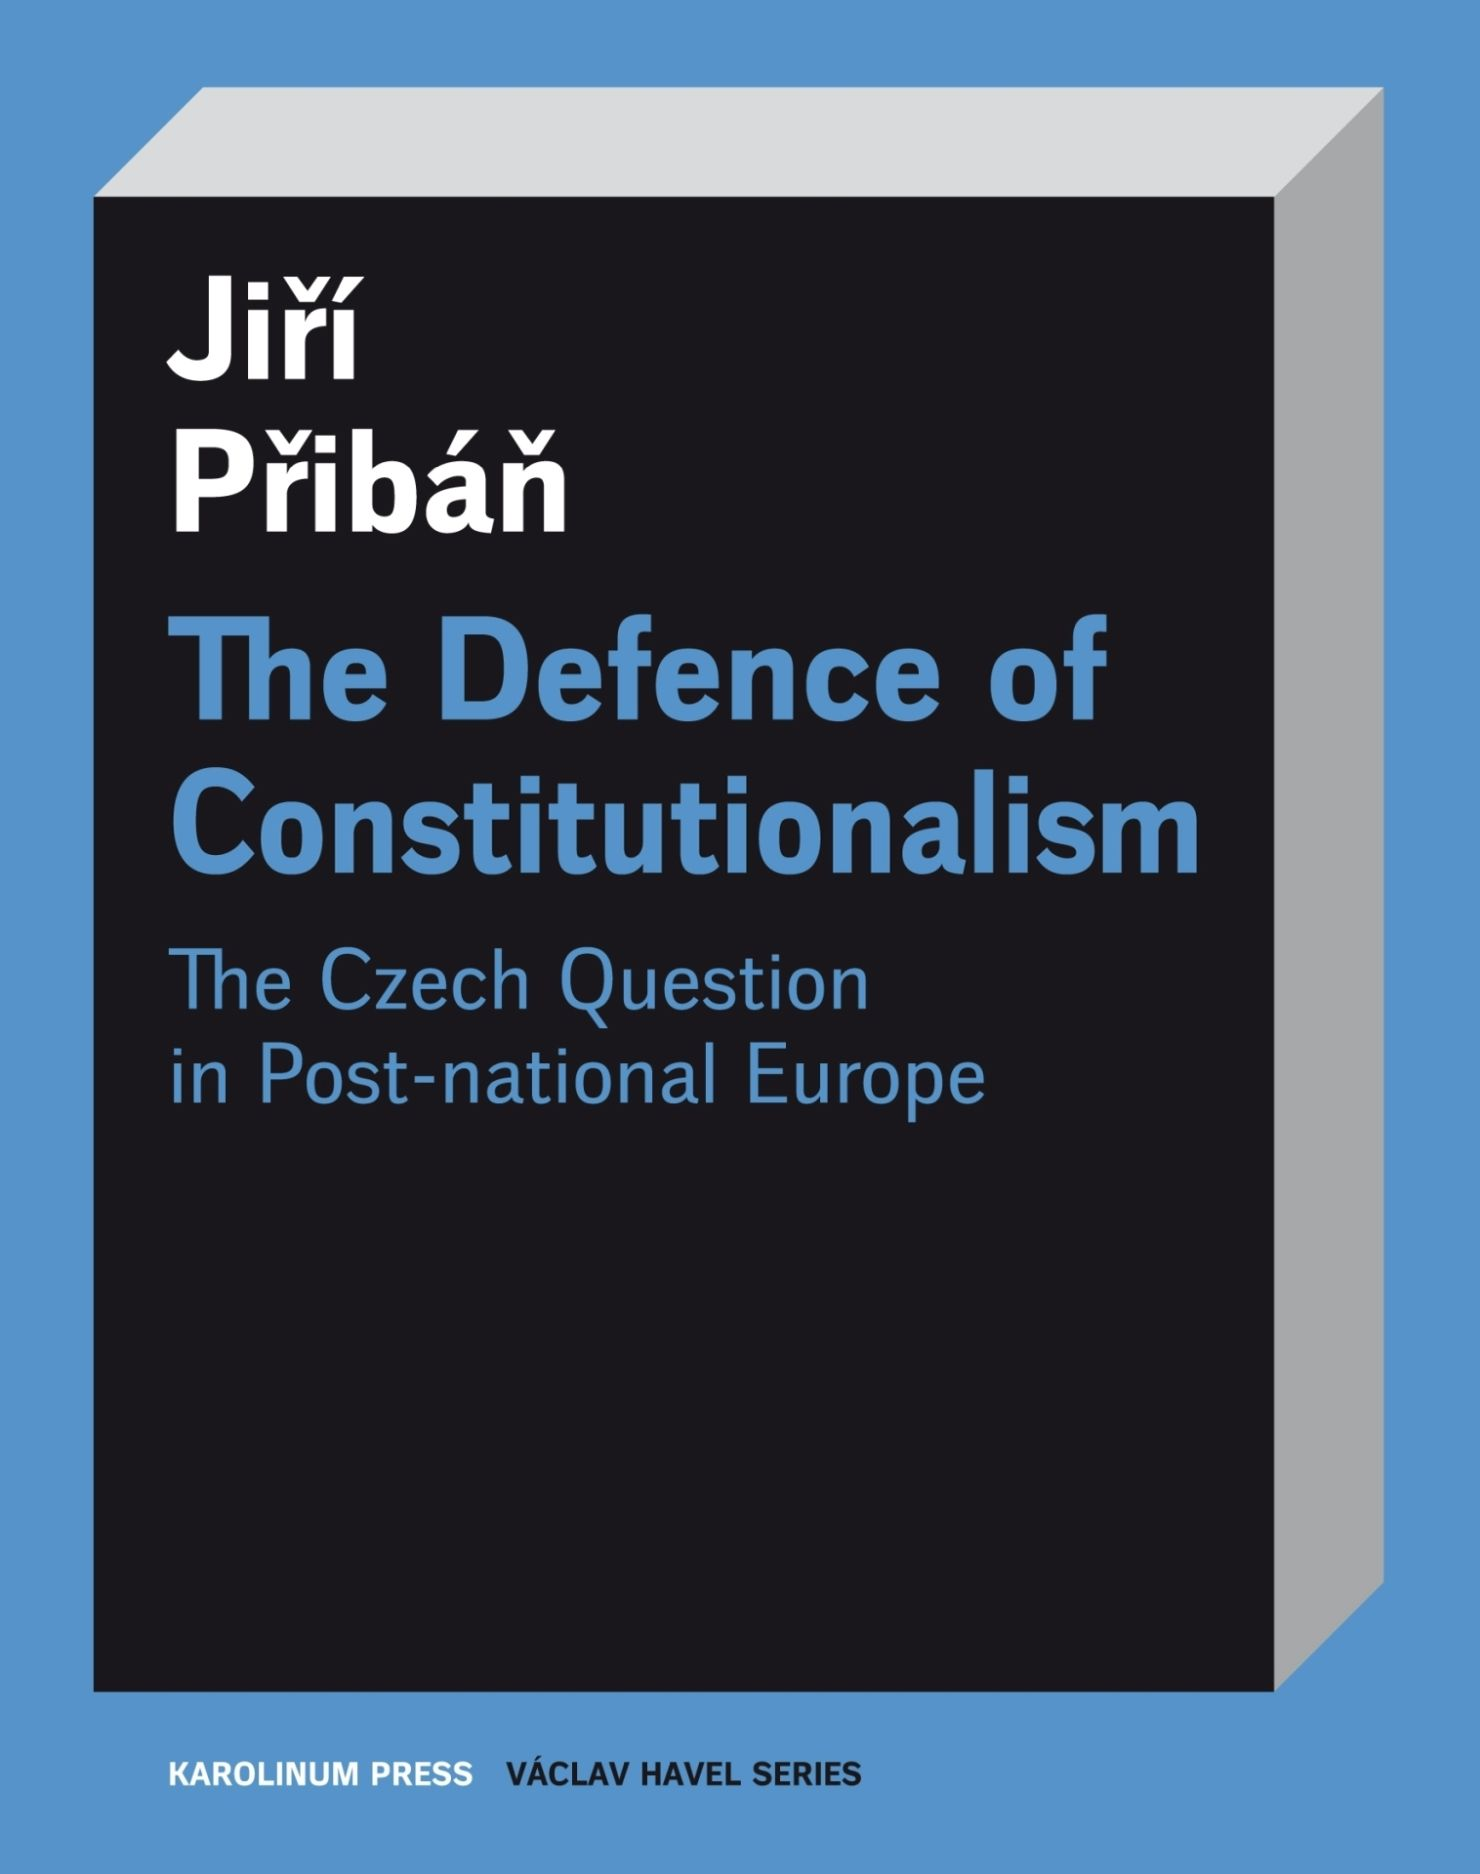 The Defence of Constitutionalism: Or the Czech Question in Post-National Europe